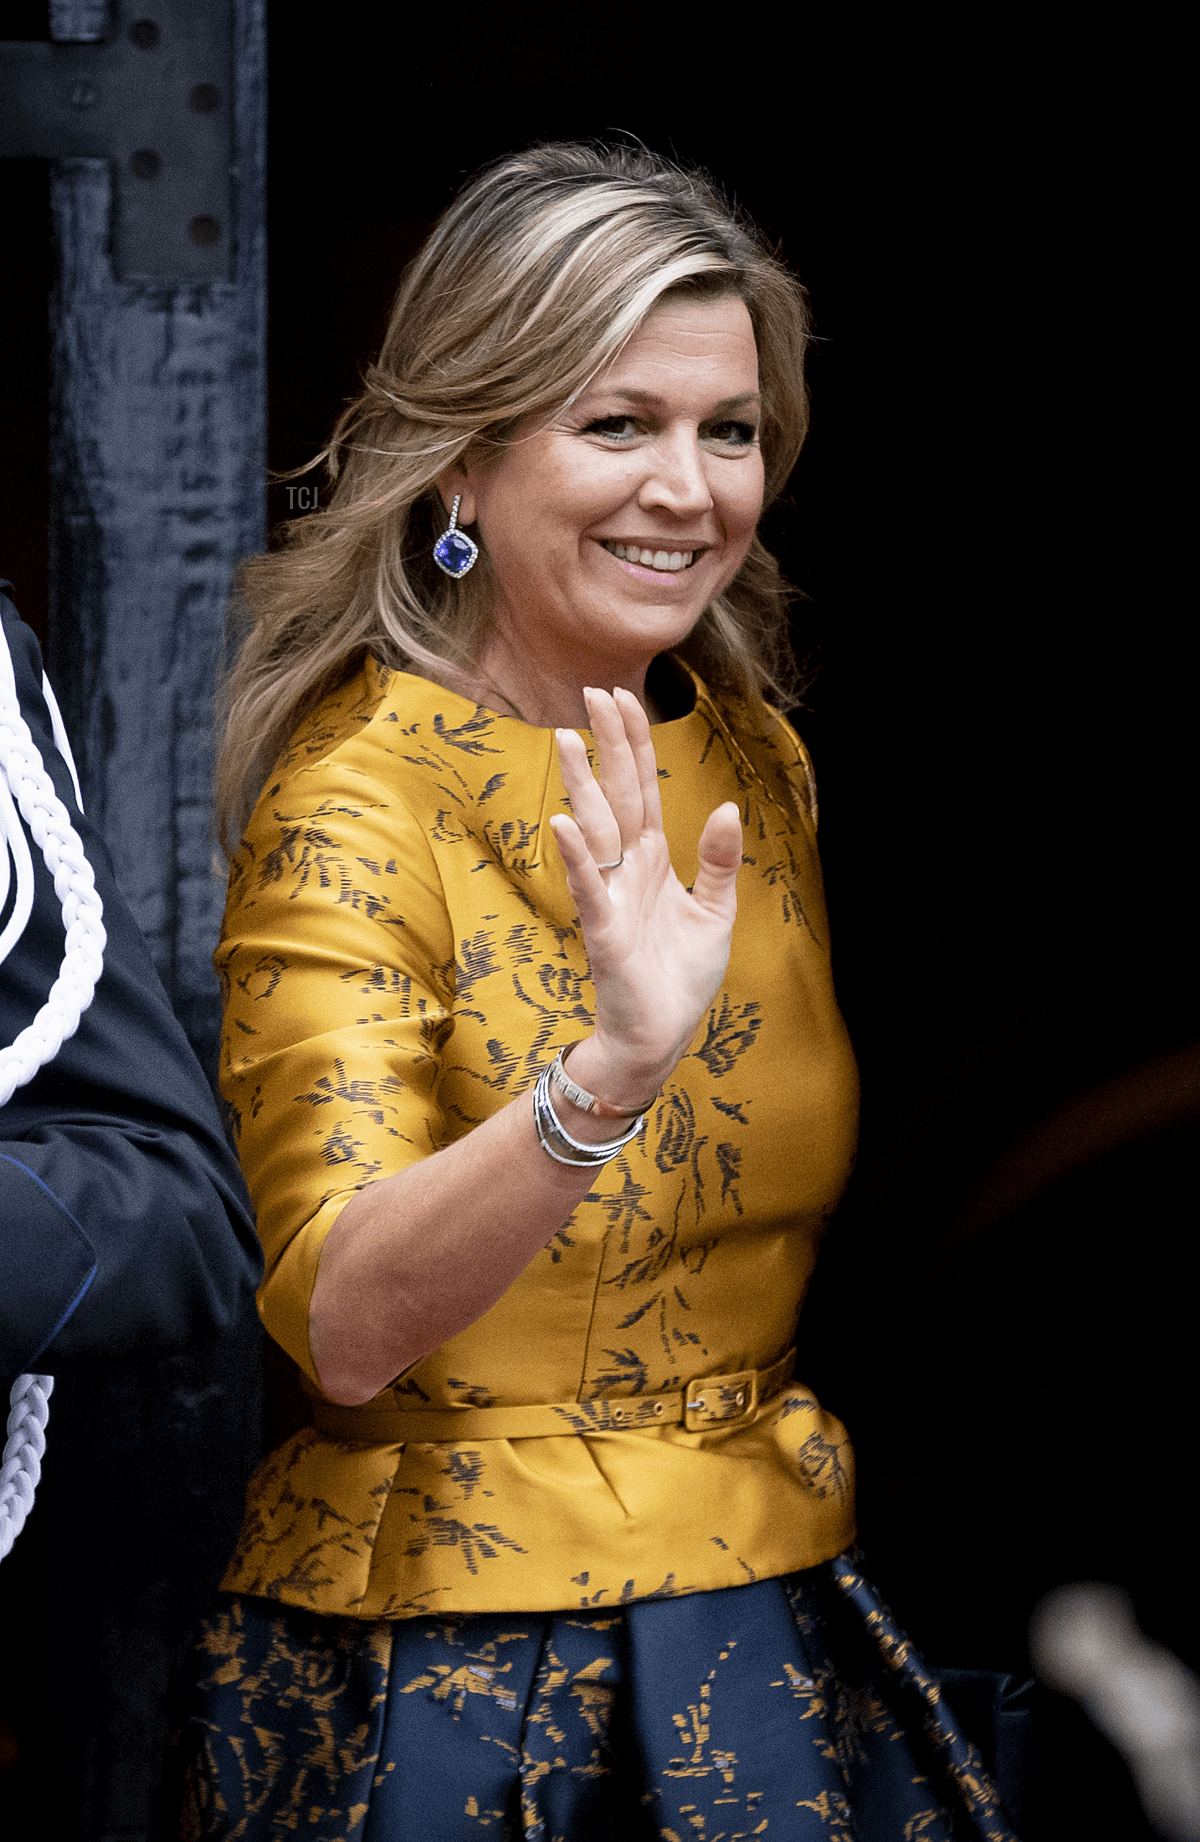 Queen Maxima of The Netherlands arrives at the Royal Palace for the new year reception for the Diplomatic Corps on January 15, 2020 in Amsterdam